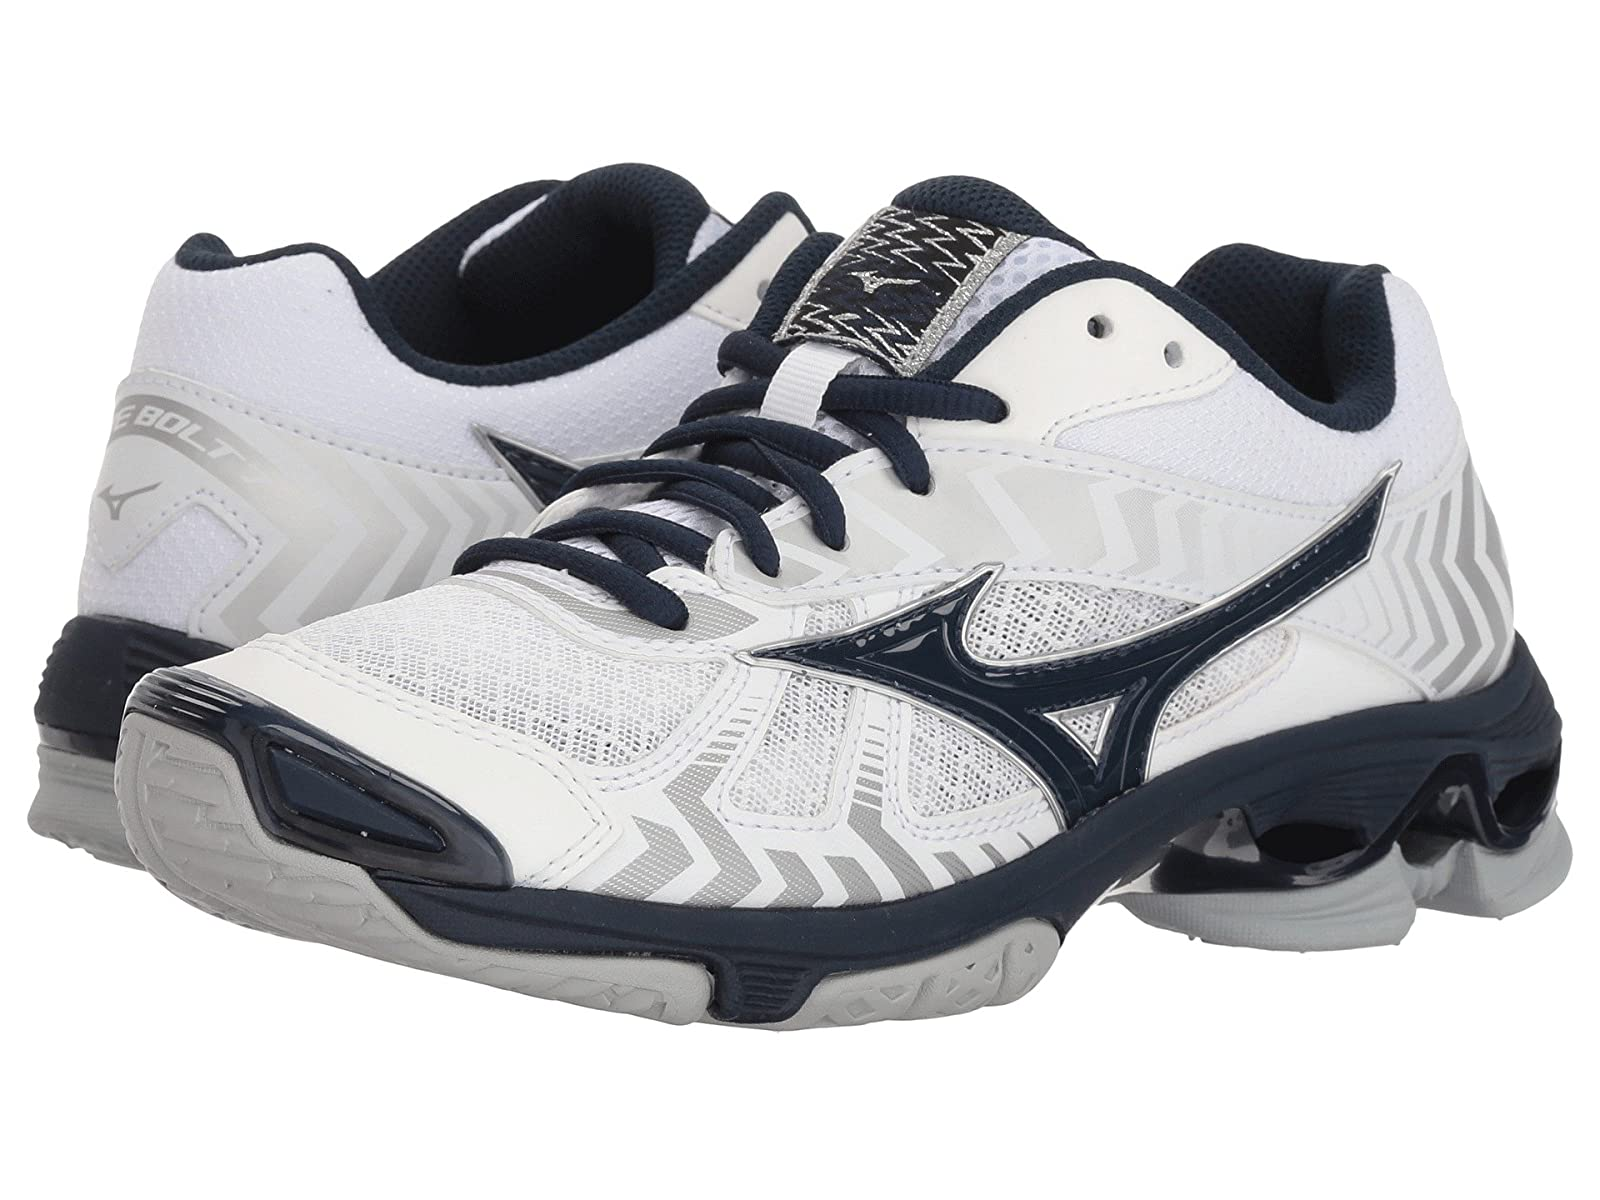 Mizuno Wave Bolt 7Atmospheric grades have affordable shoes